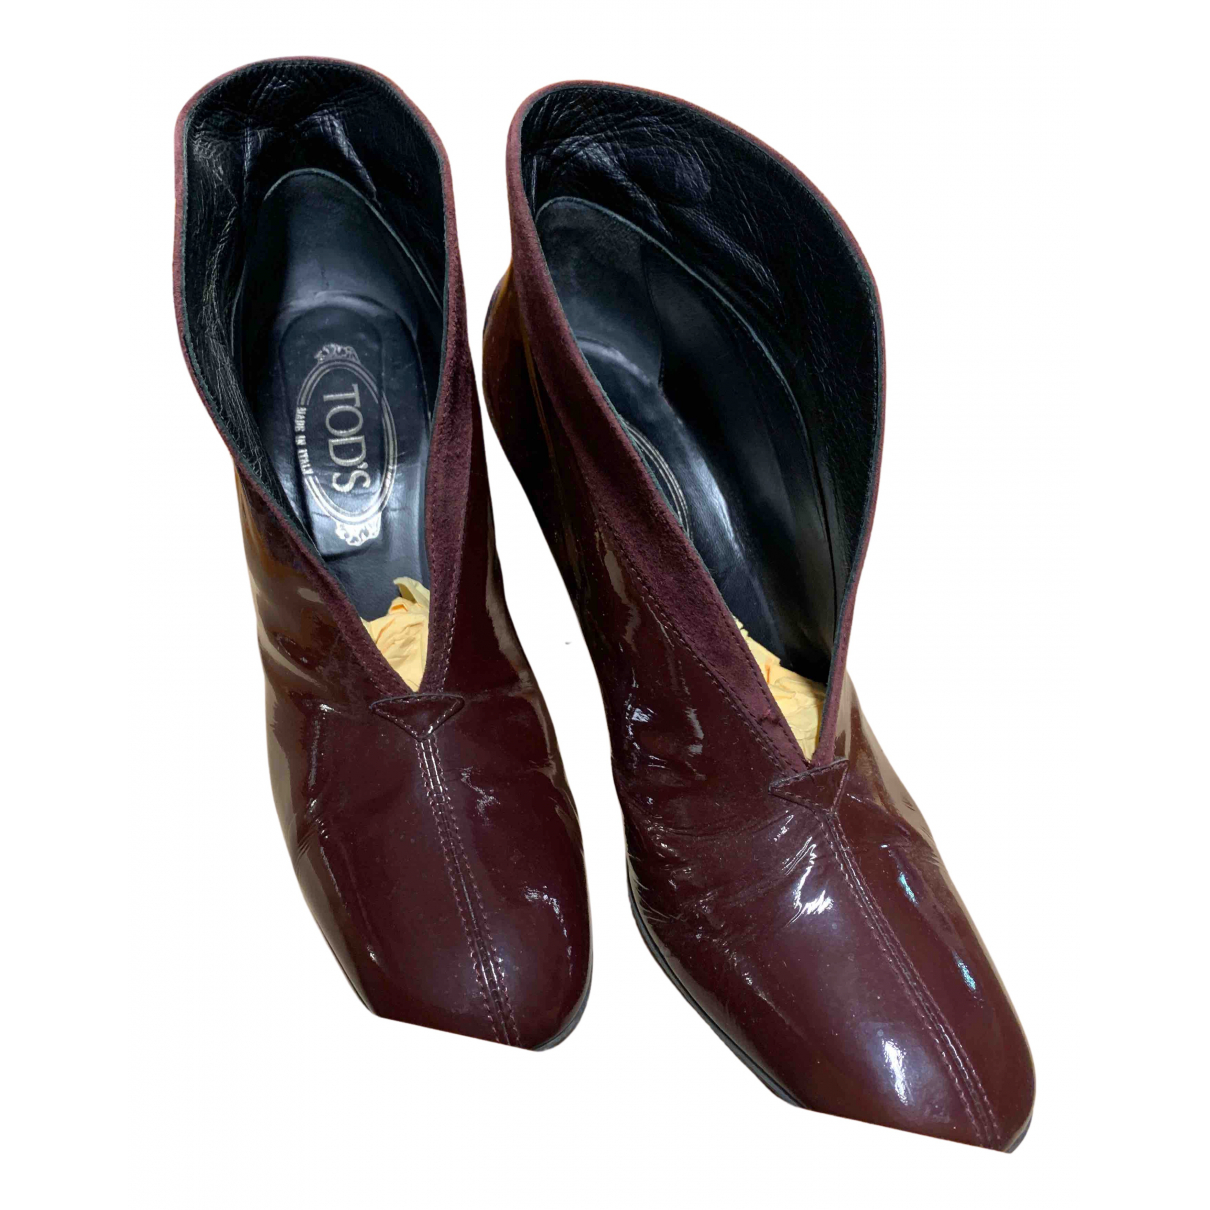 Tod's N Burgundy Patent leather Heels for Women 39 EU